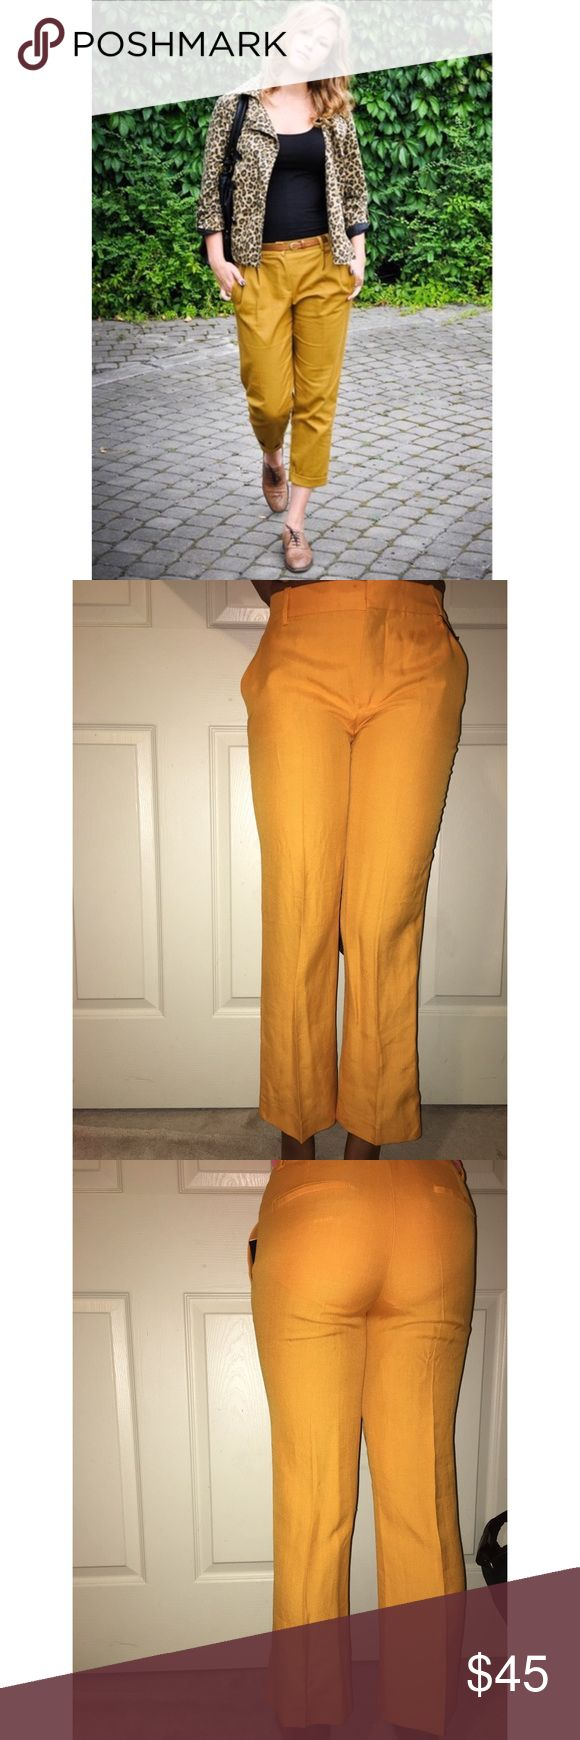 Mustard Yellow Linen Pants Adorable mustard yellow trousers. If you love color, these pants are for you! They hug a woman's curve in all the right places and can be a great staple piece. Your closet needs this. Can't you hear it screaming out to you?! Buy me 😍 Zara Pants Ankle & Cropped